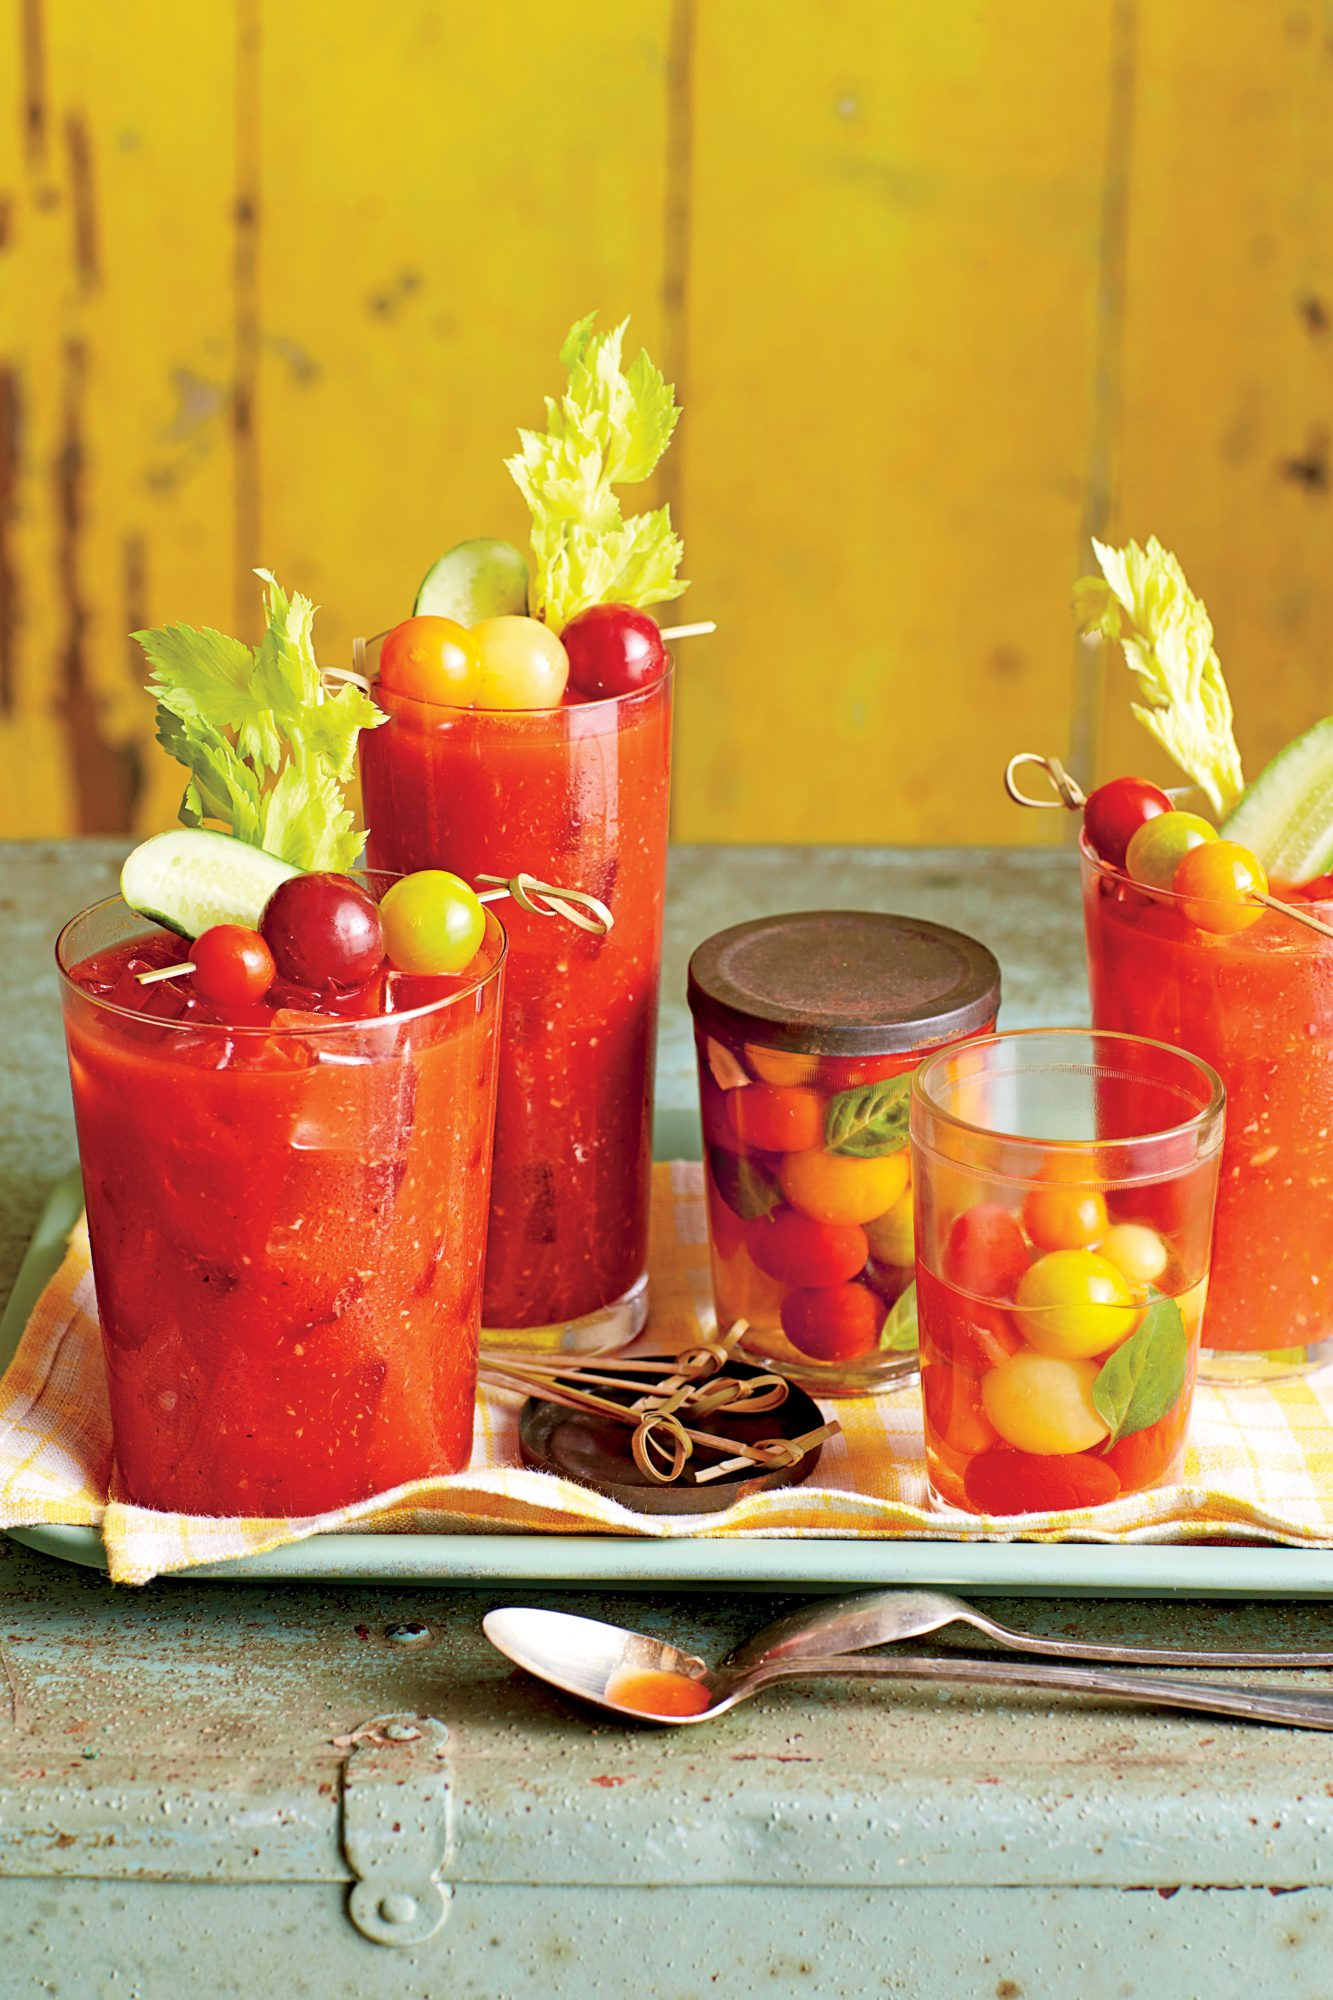 Mouthwatering Marinated Tomatoes